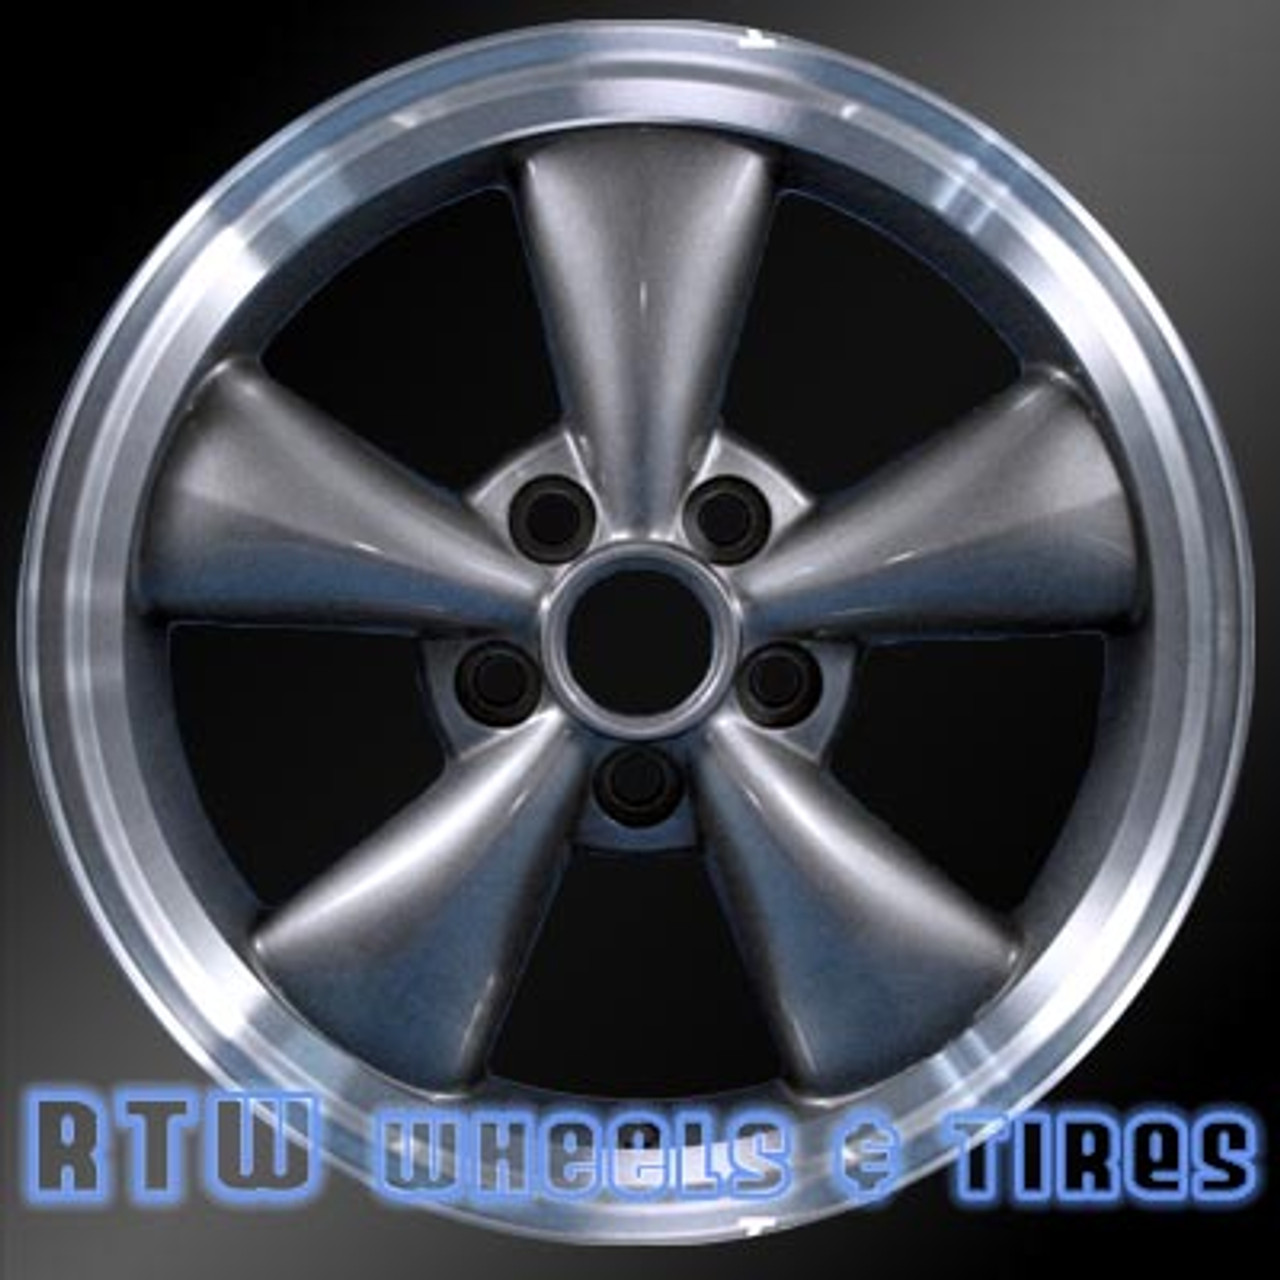 2005 Mustang Wheels >> Ford Mustang Wheels For Sale 2005 2009 Silver 3587